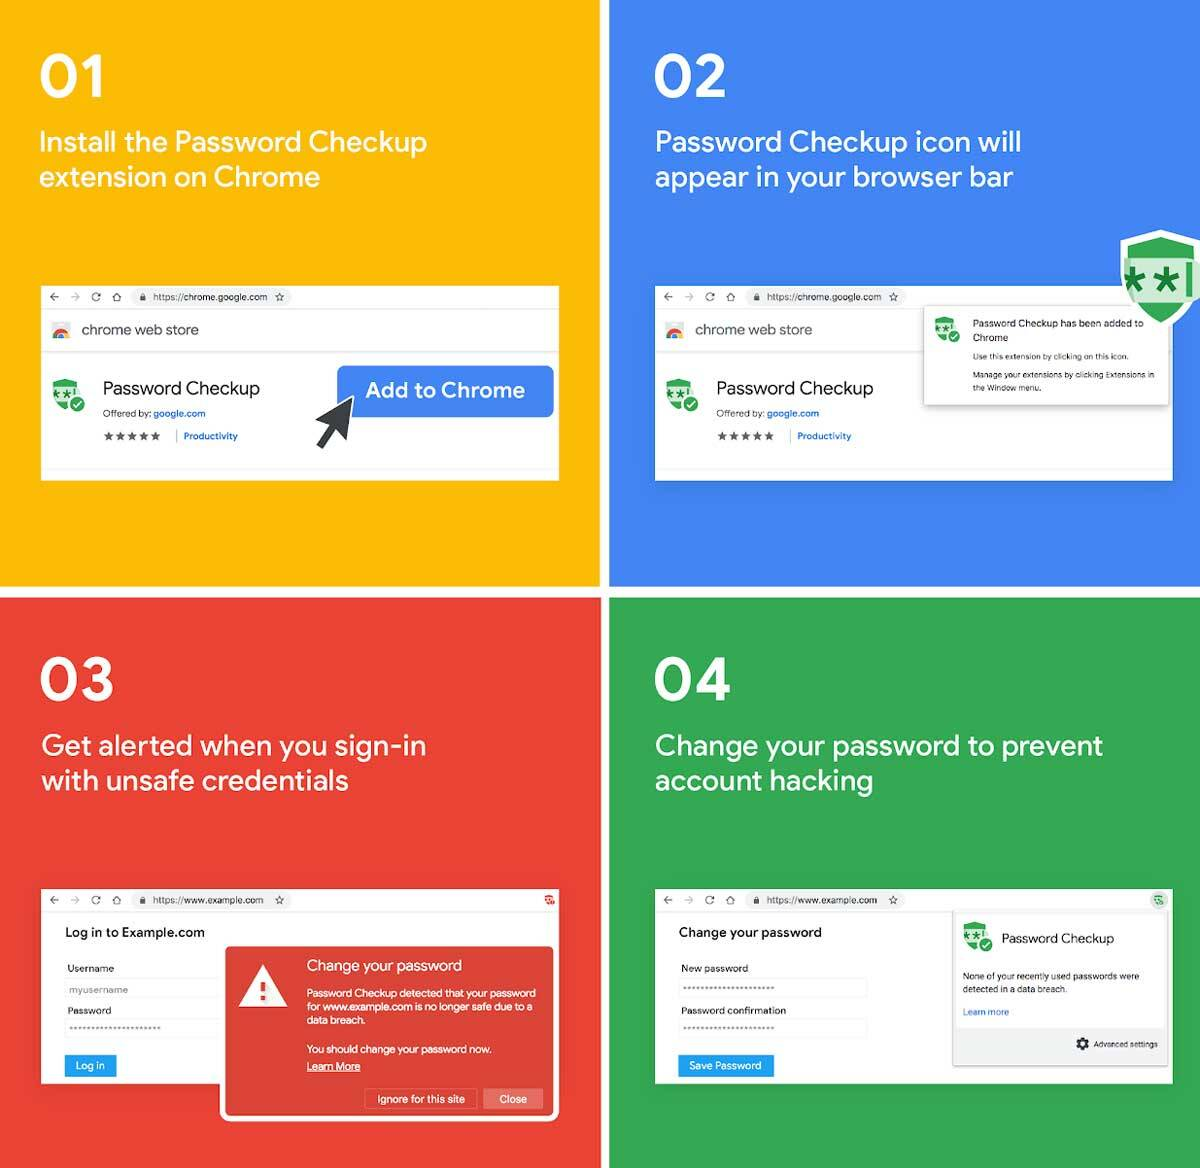 Google, Google Password Checkup, Google Password Checkup Chrome extension, Google Password extension, Google Cross Account protection, Google Cross account